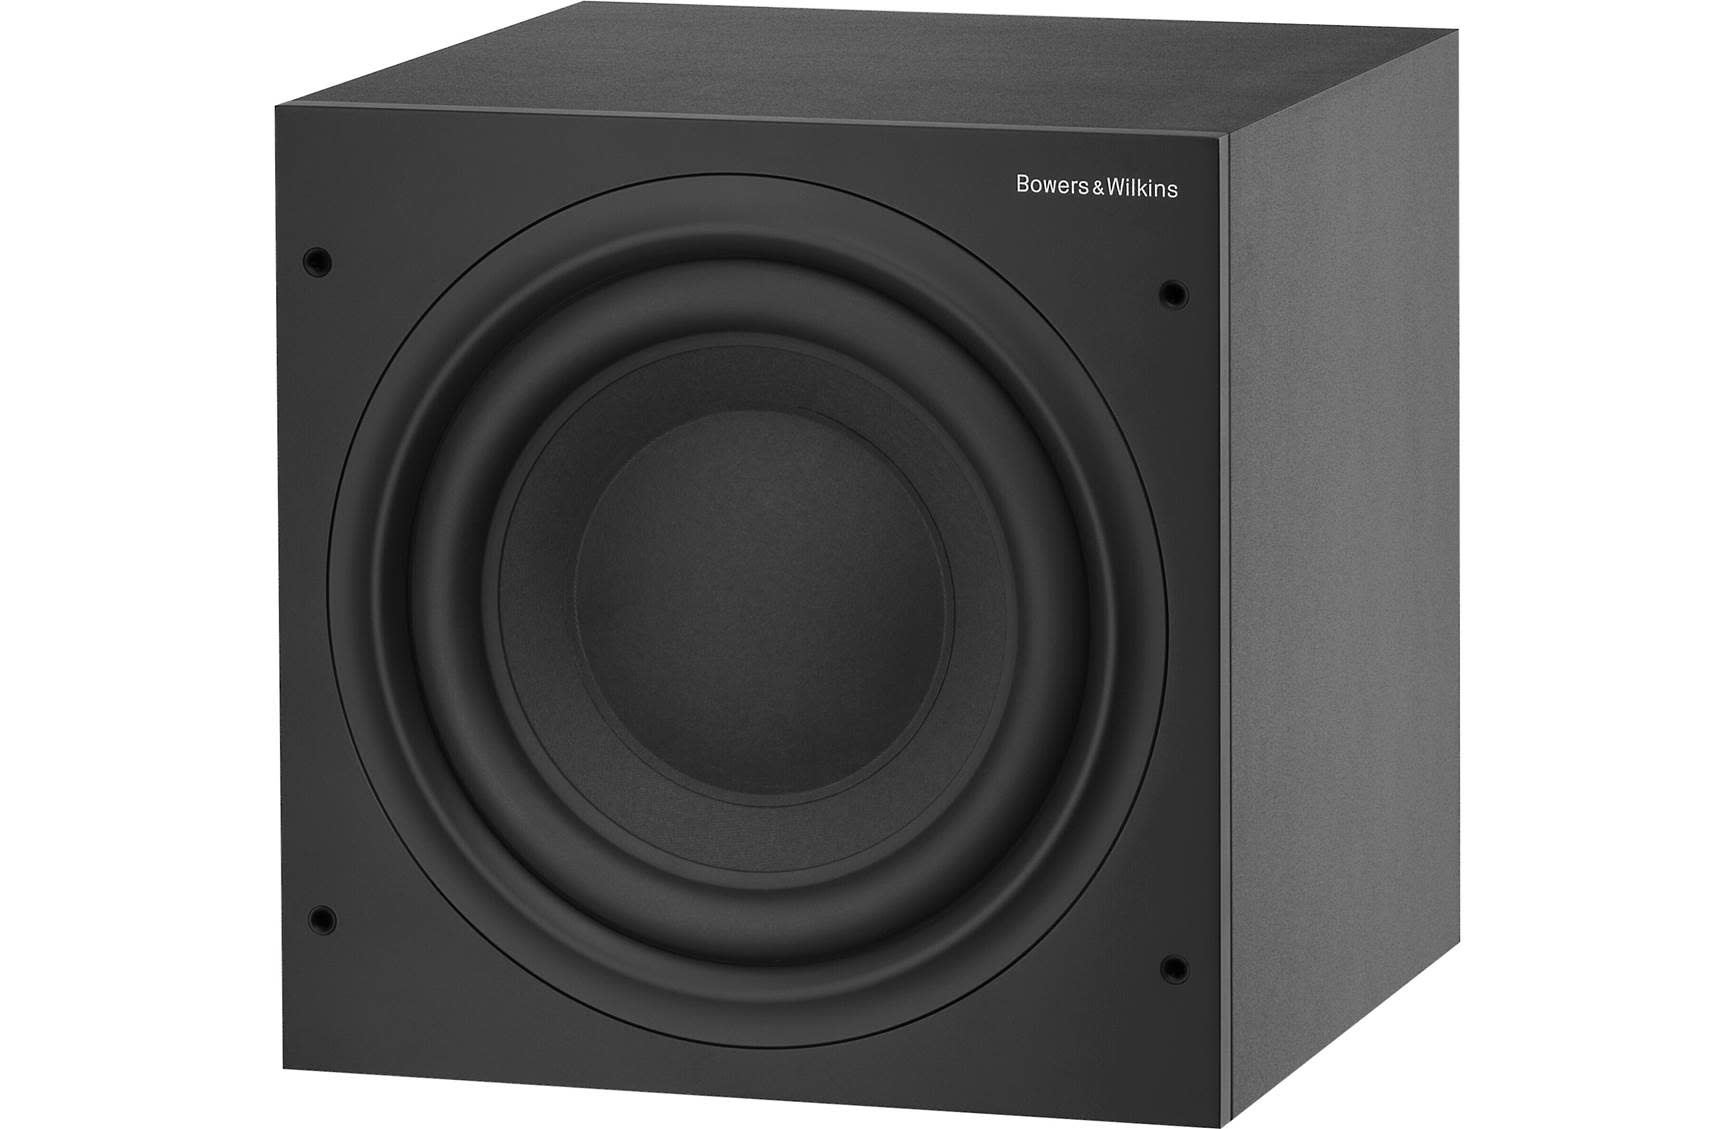 Bowers & Wilkins ASW610 Subwoofer ( each )